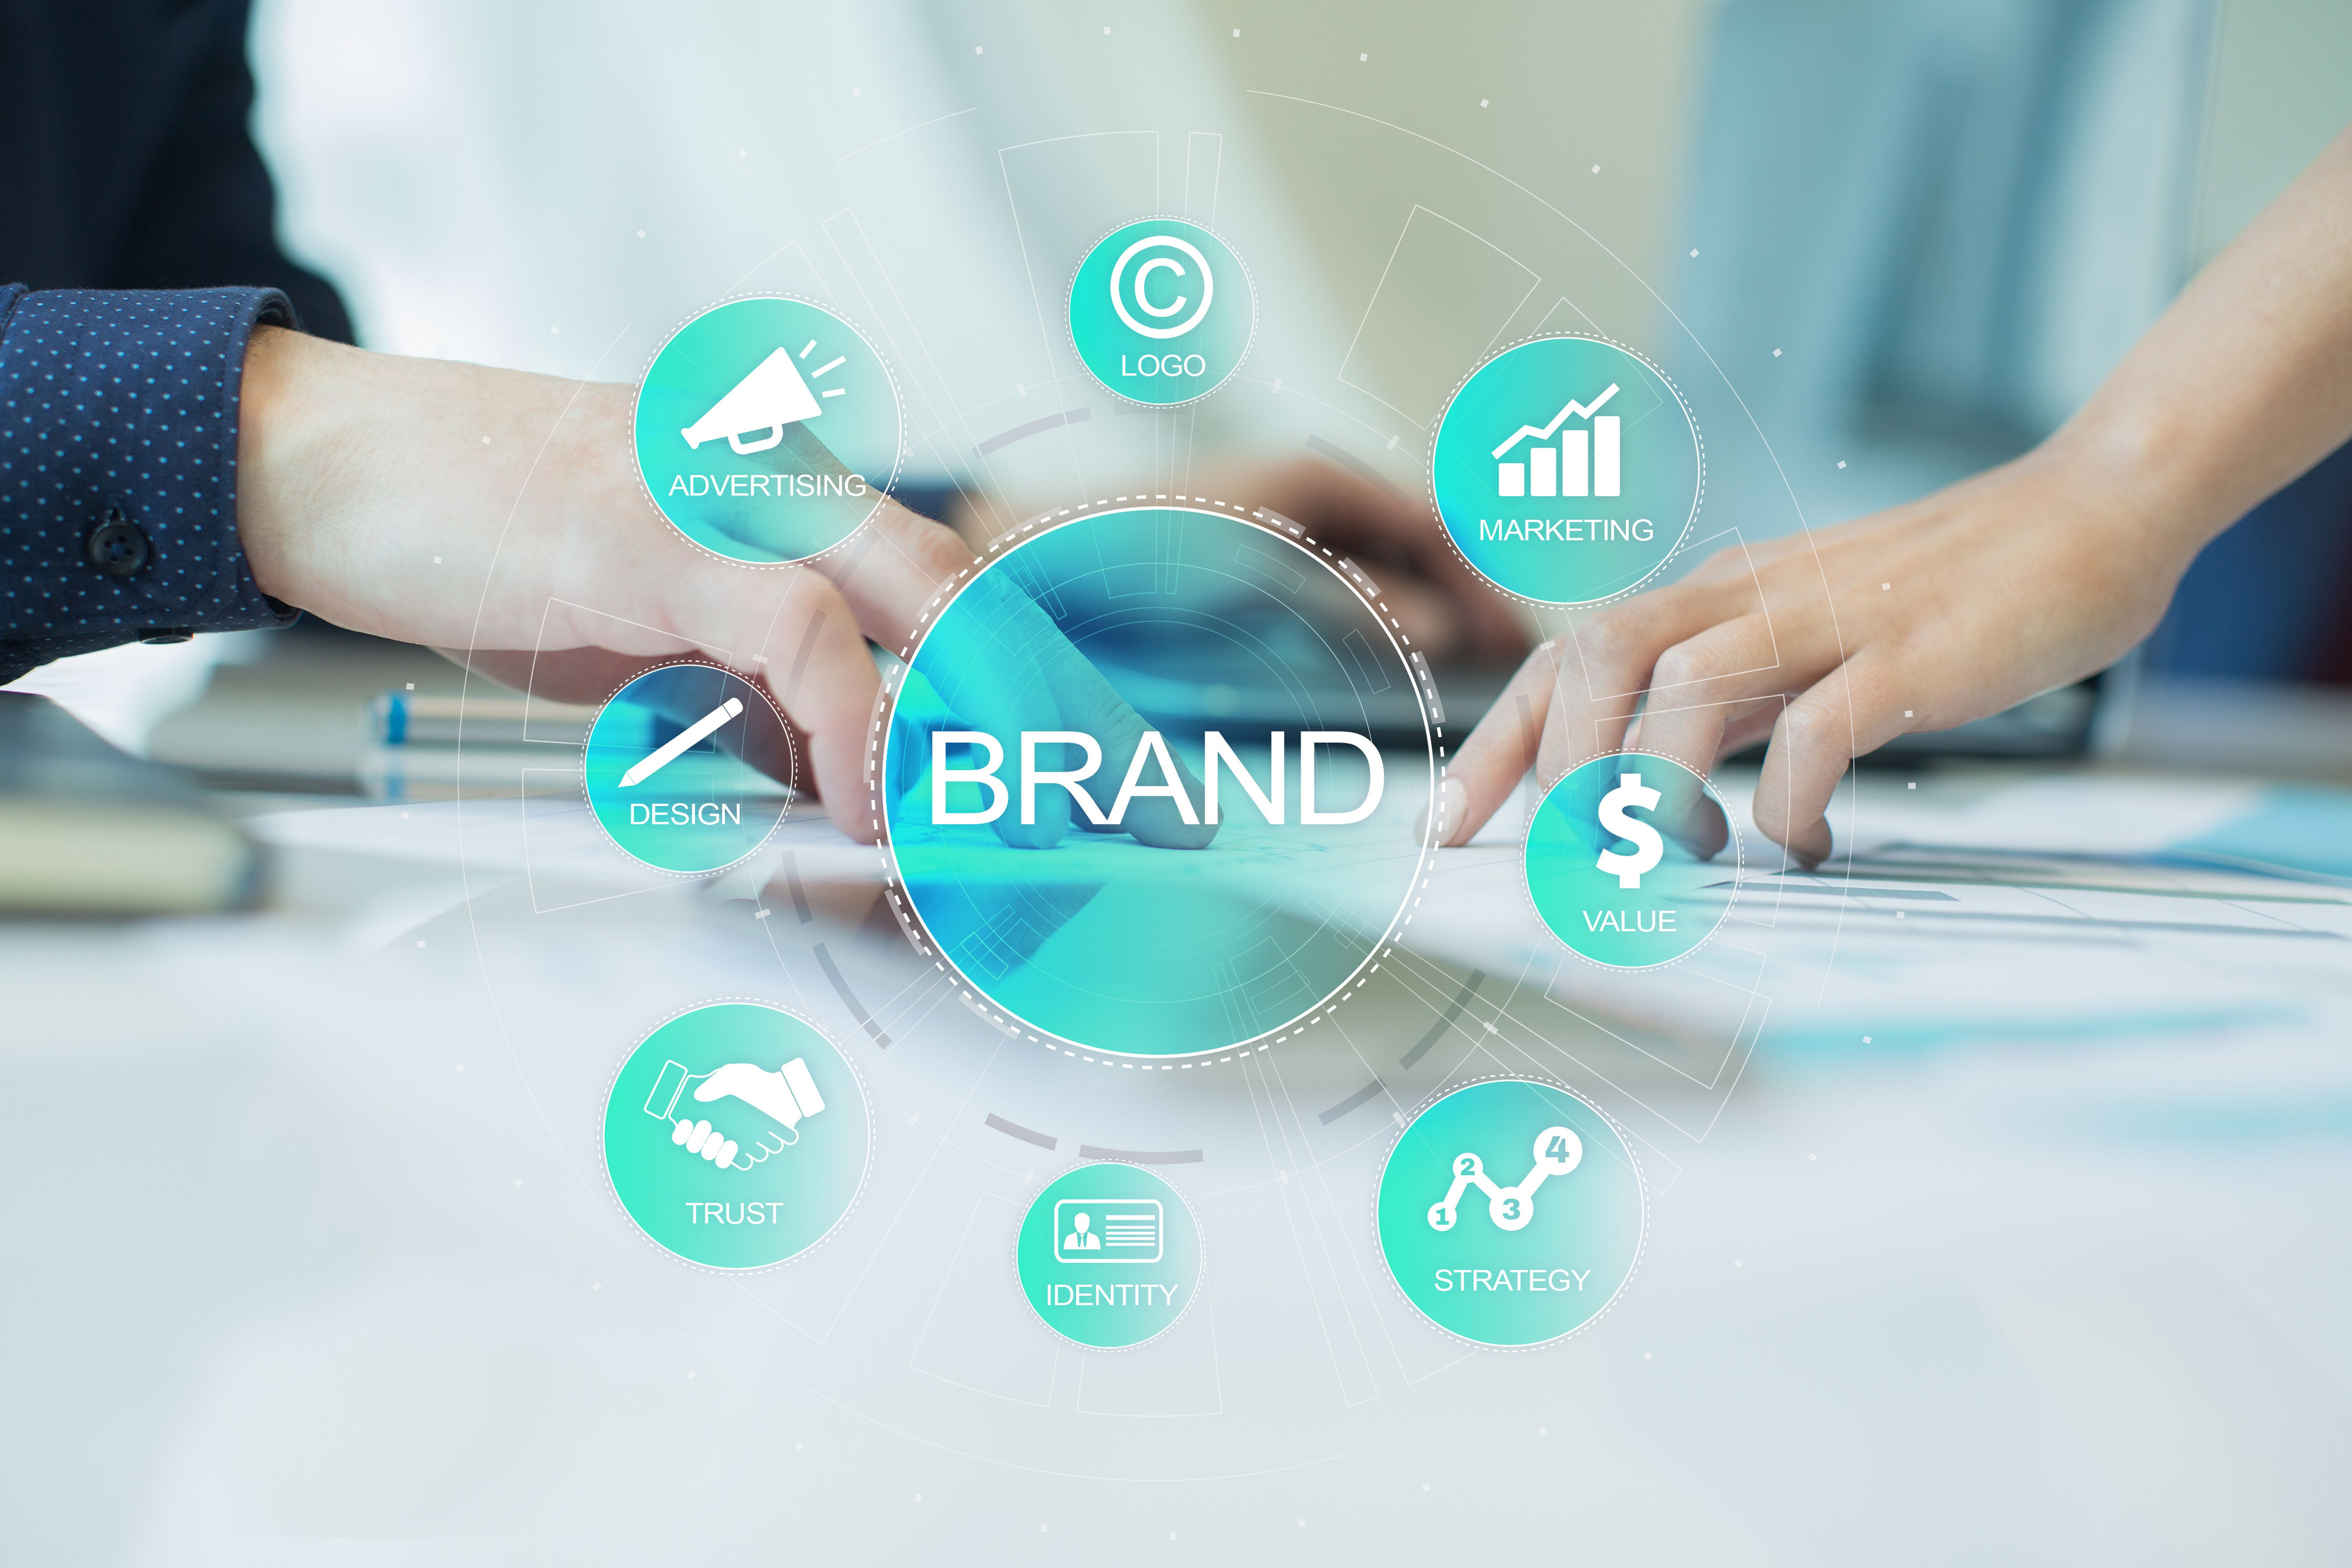 /5-ideas-to-promote-the-launch-of-your-startup-0z2b35w3 feature image